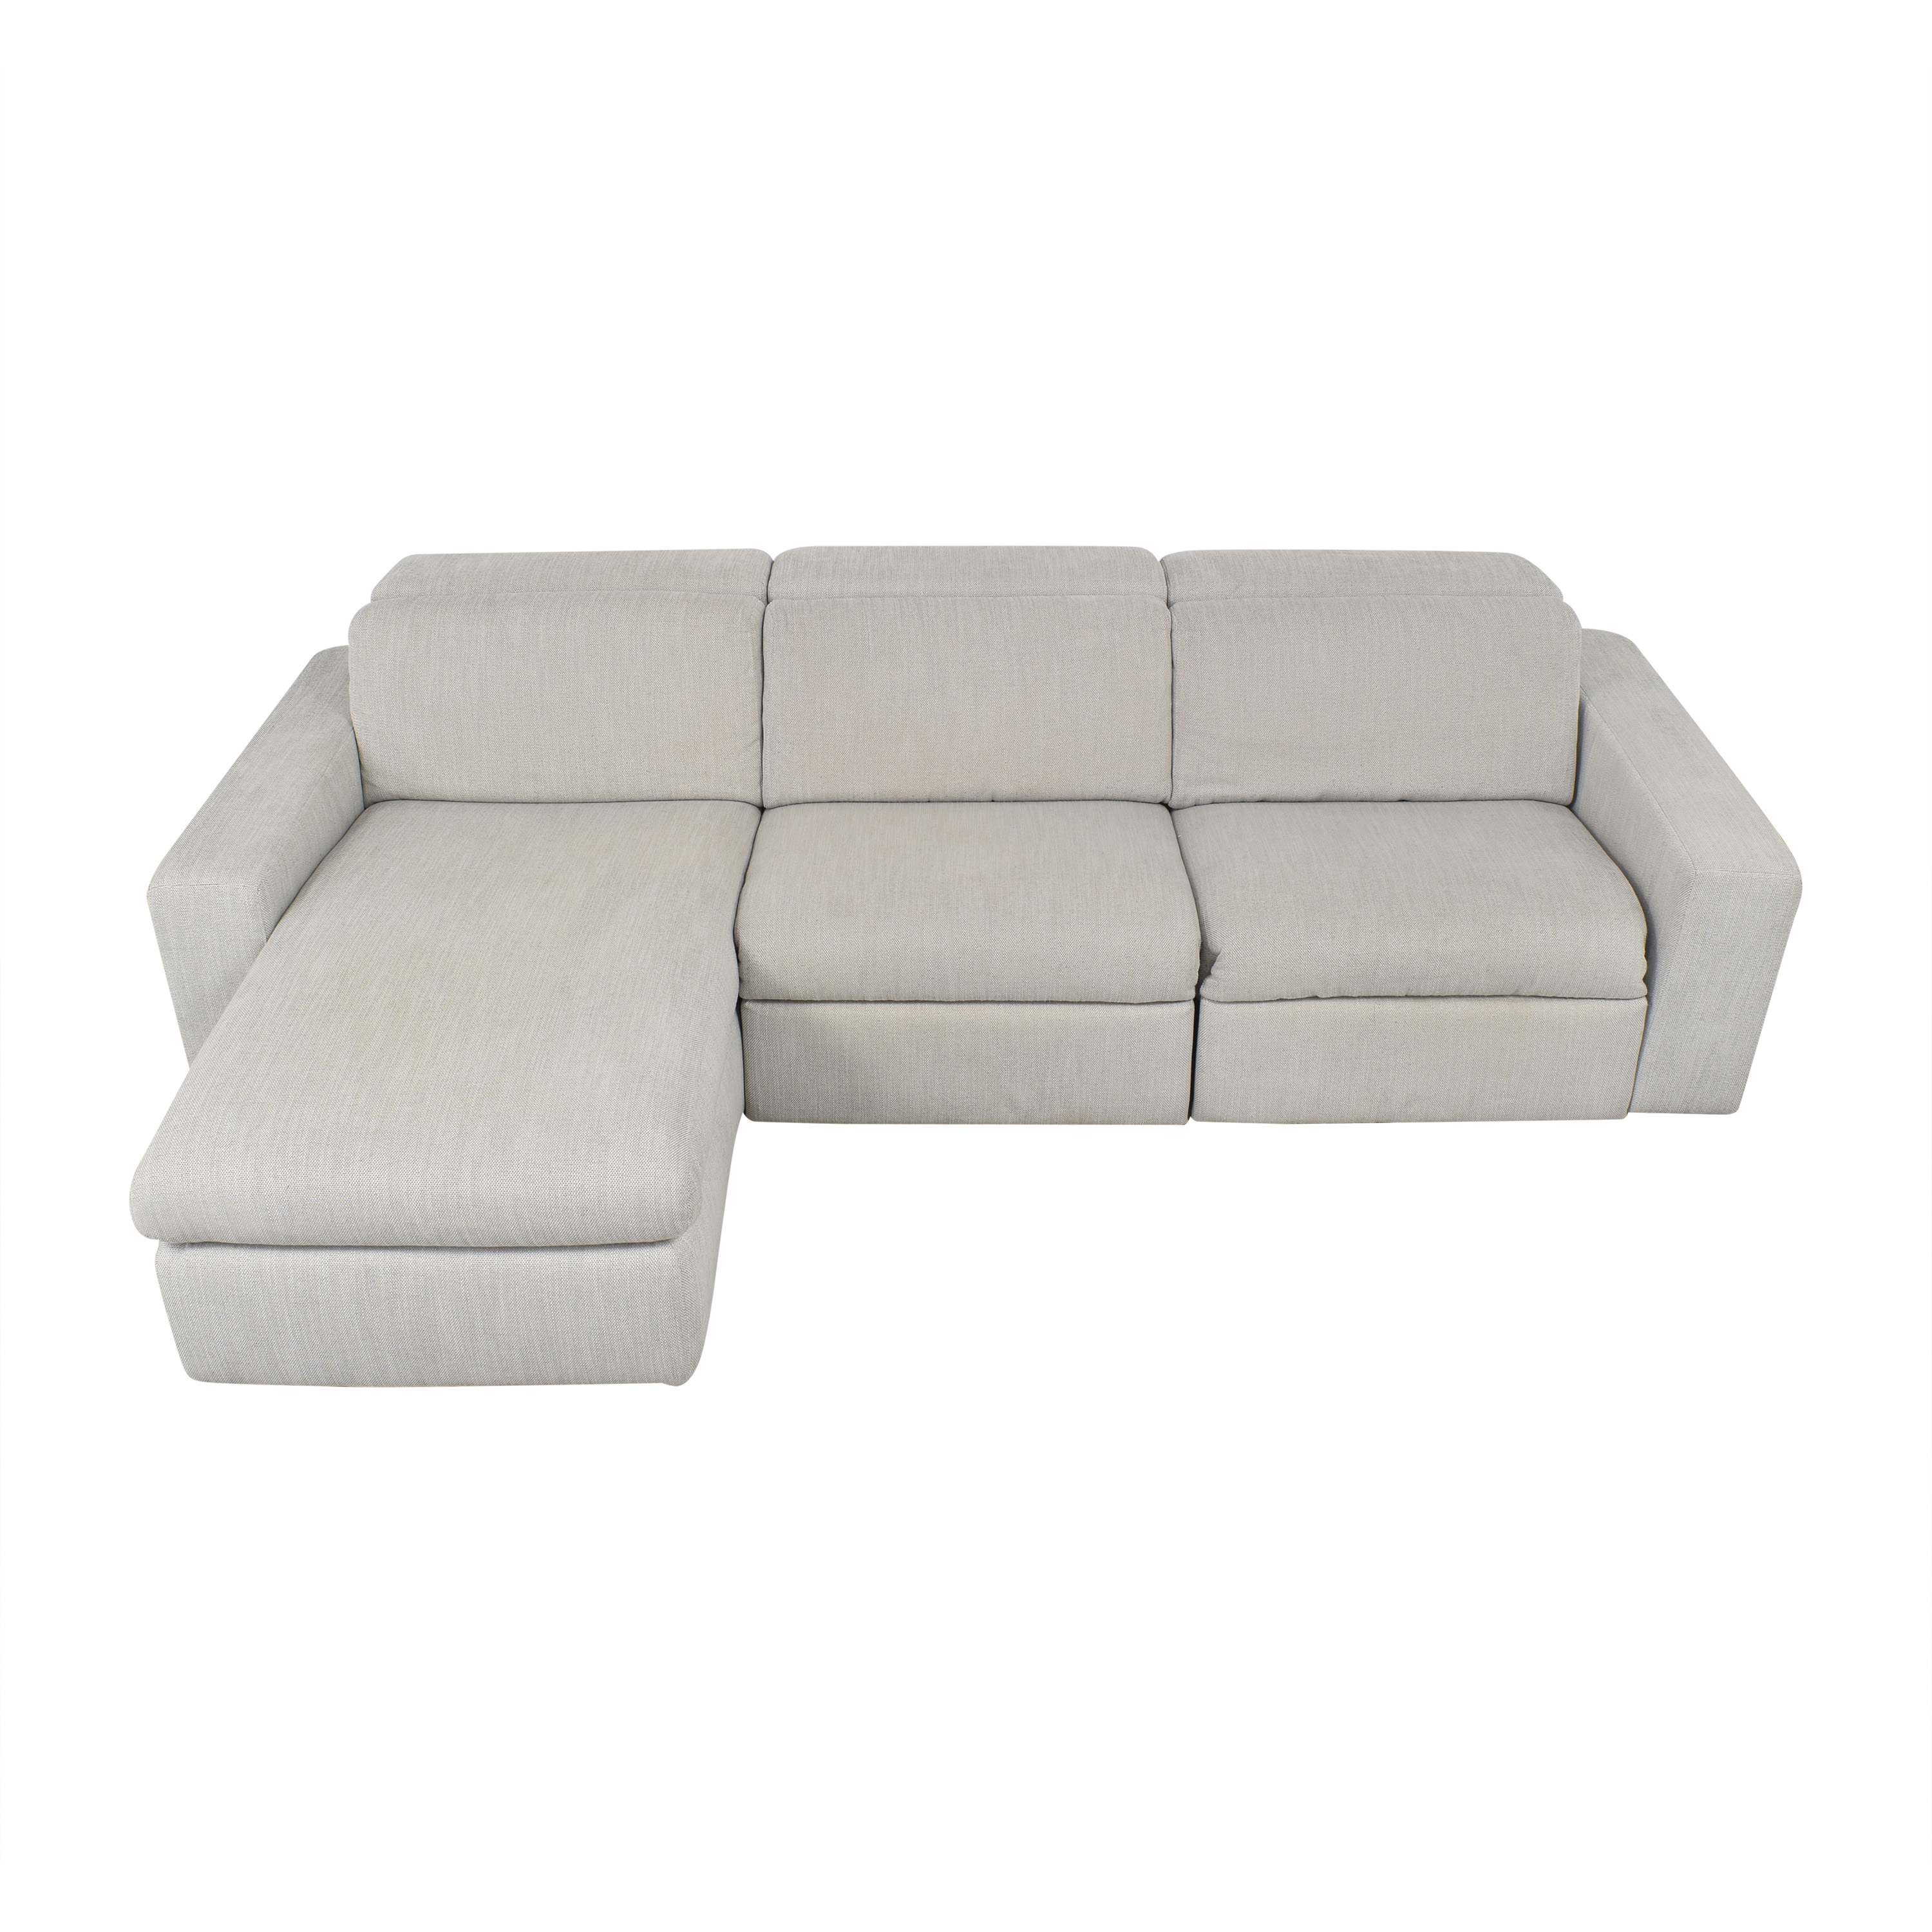 West Elm West Elm Enzo Reclining Chaise Sectional with Storage Sofas